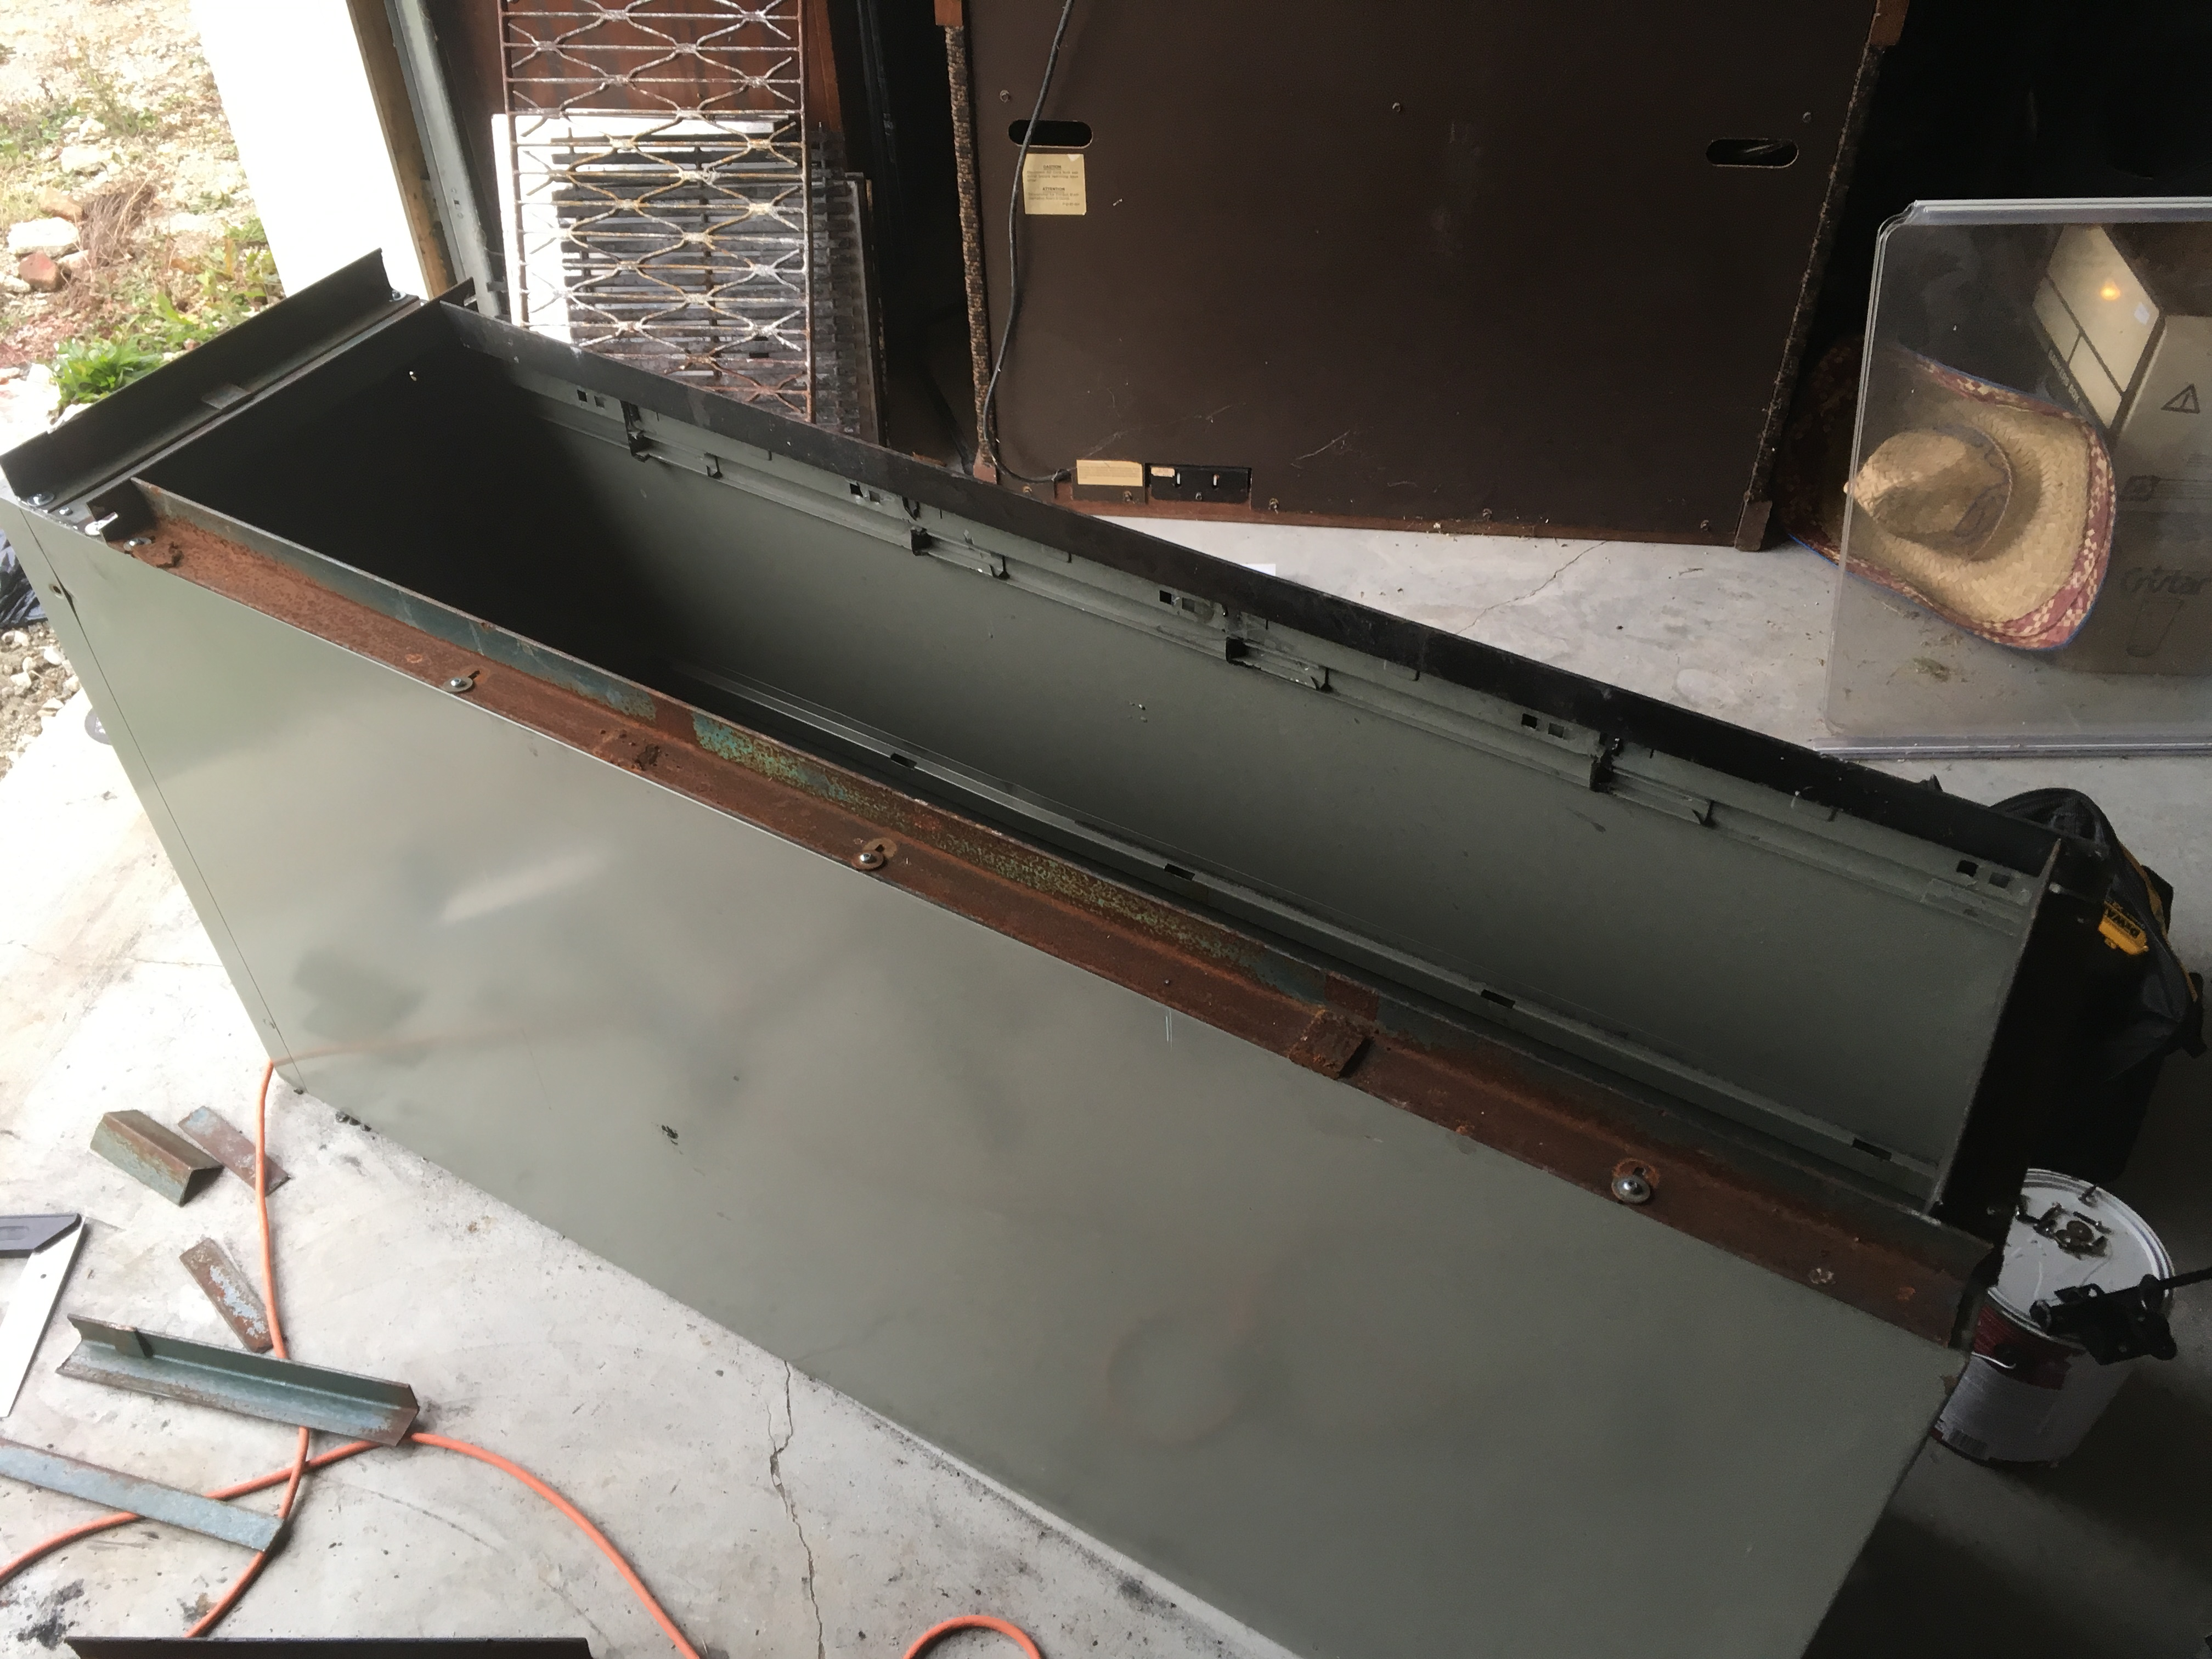 Picture of Angle Iron for Support